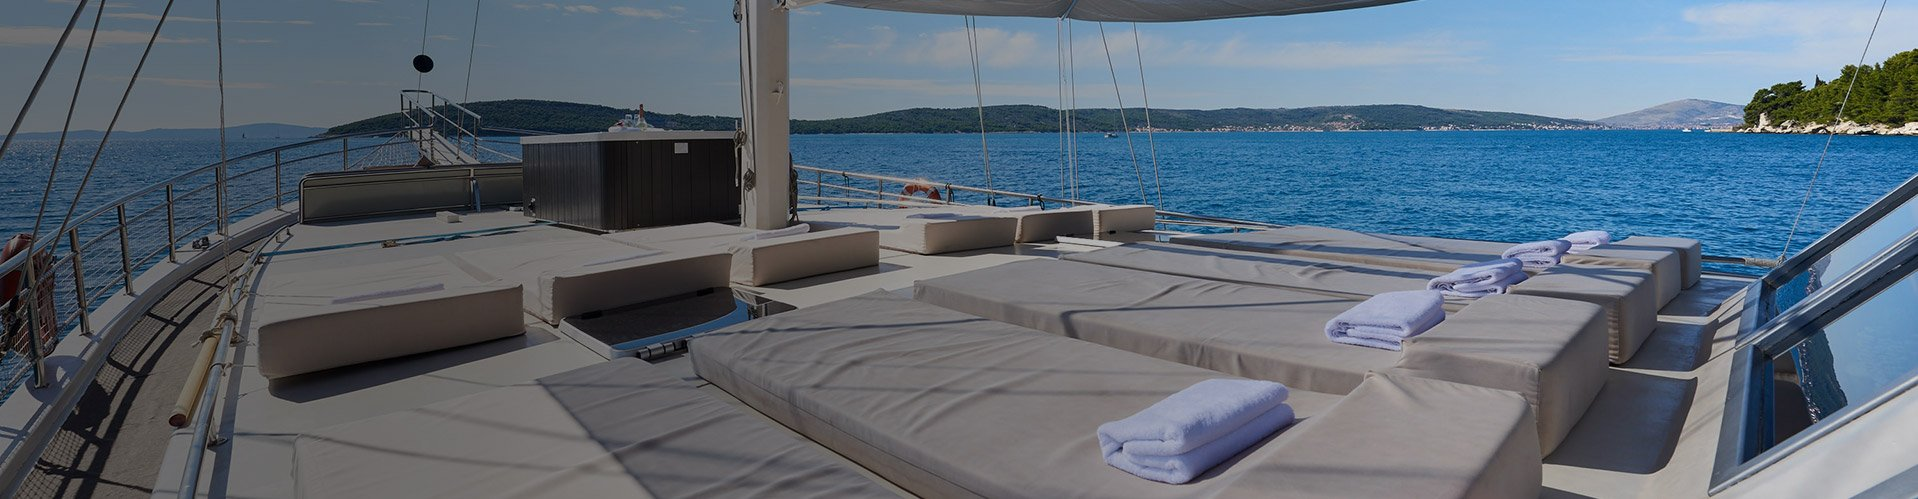 Relaxing cruise on gulet – traditional wooden vessel refitted to a luxury accommodation.